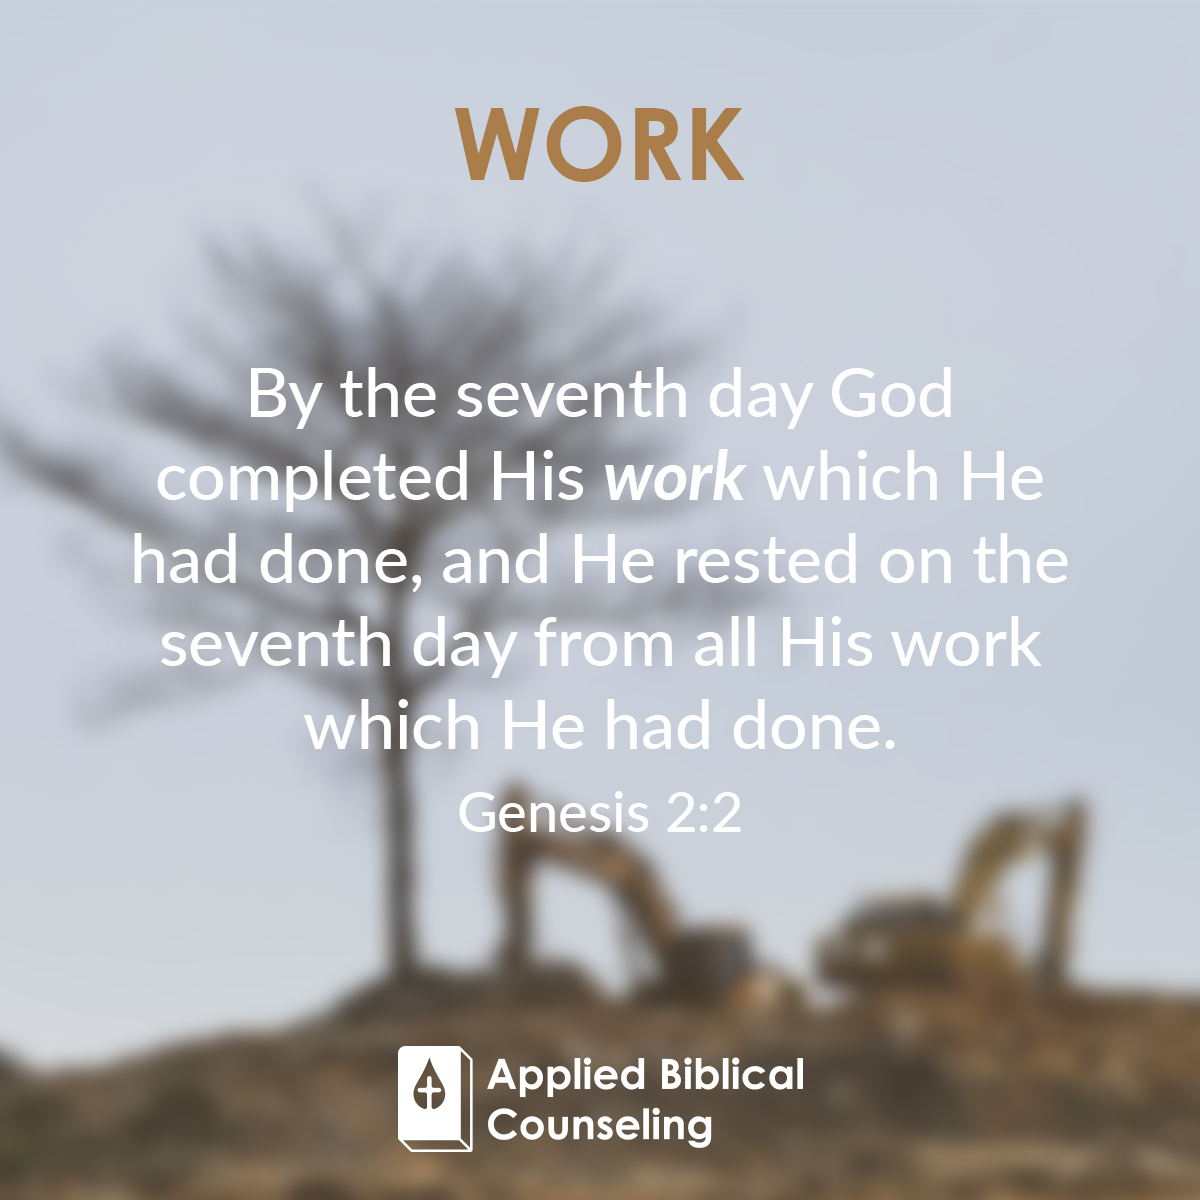 Applied Biblical Counseling Facebook w24 Work 1